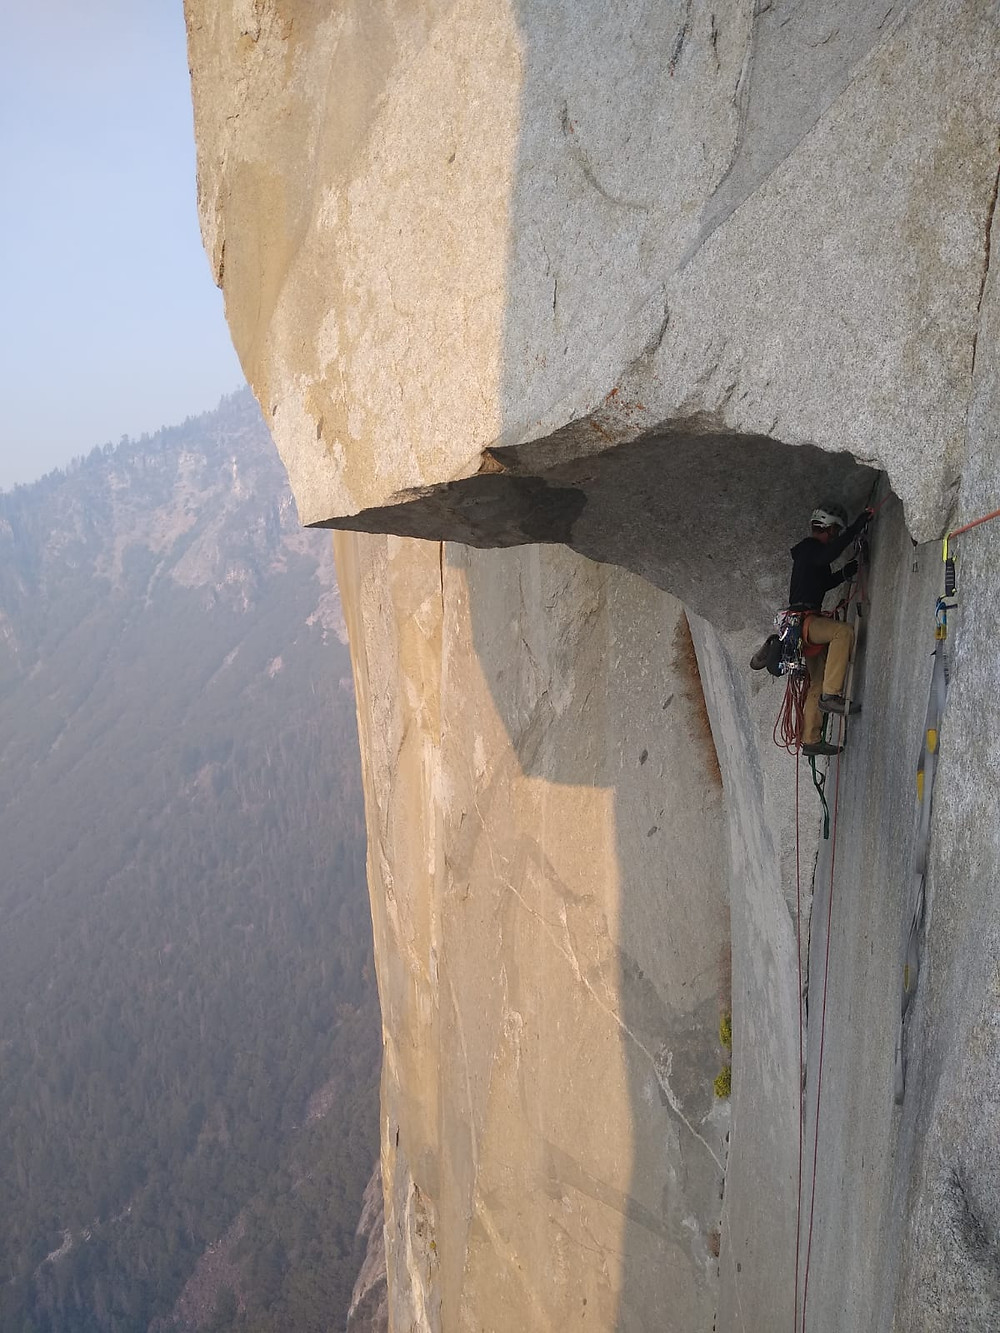 """Pitch 22 of The Nose aka """"The Great Roof"""". Yosemite."""